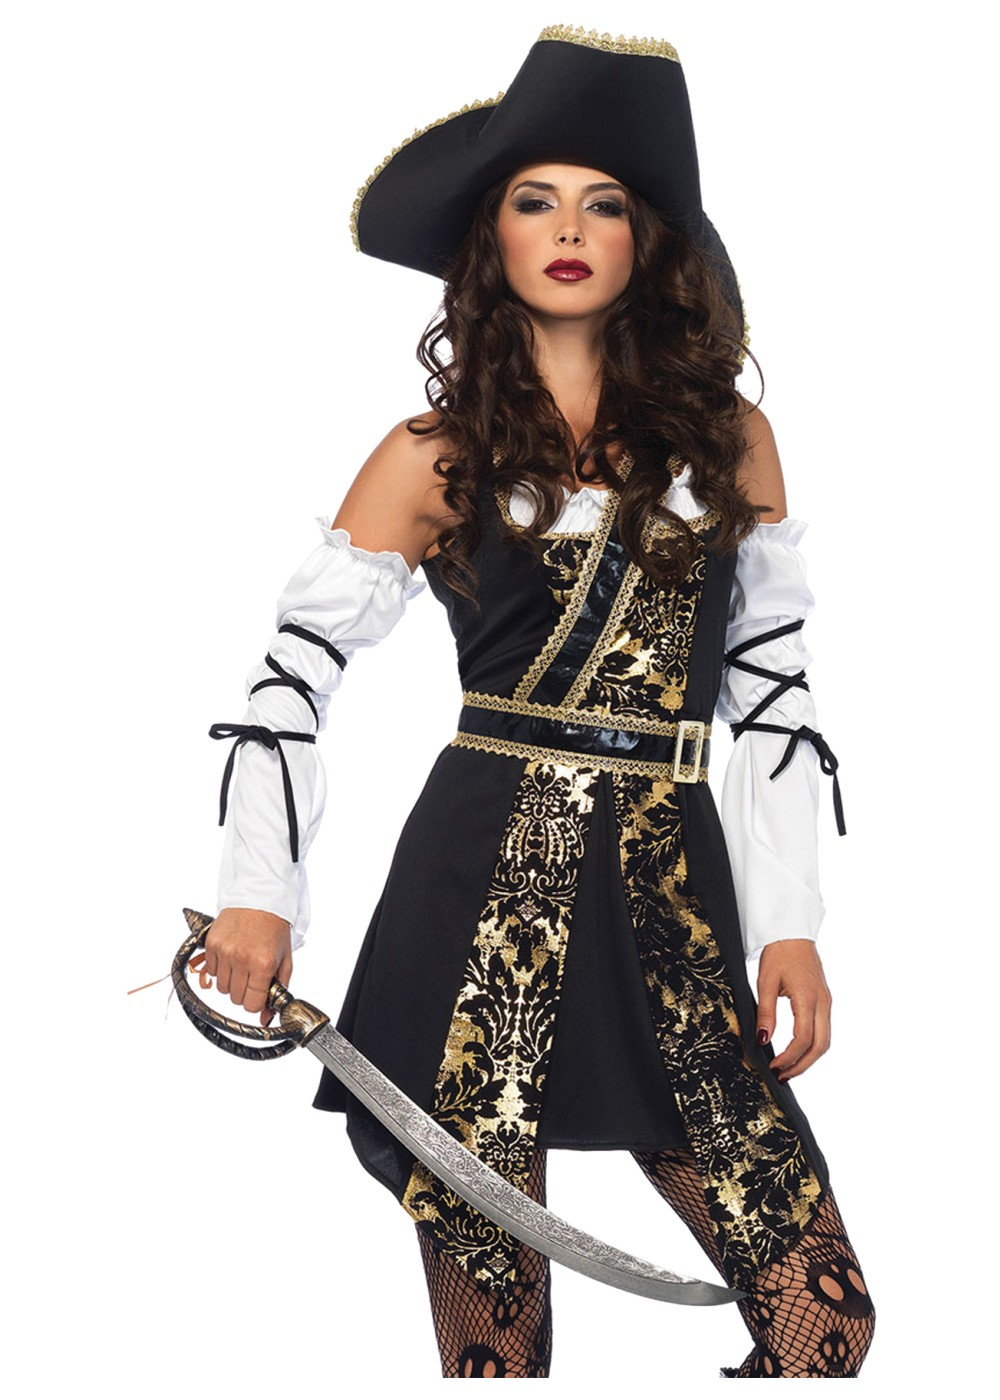 Buccaneer Pirate Women Costume Costumes